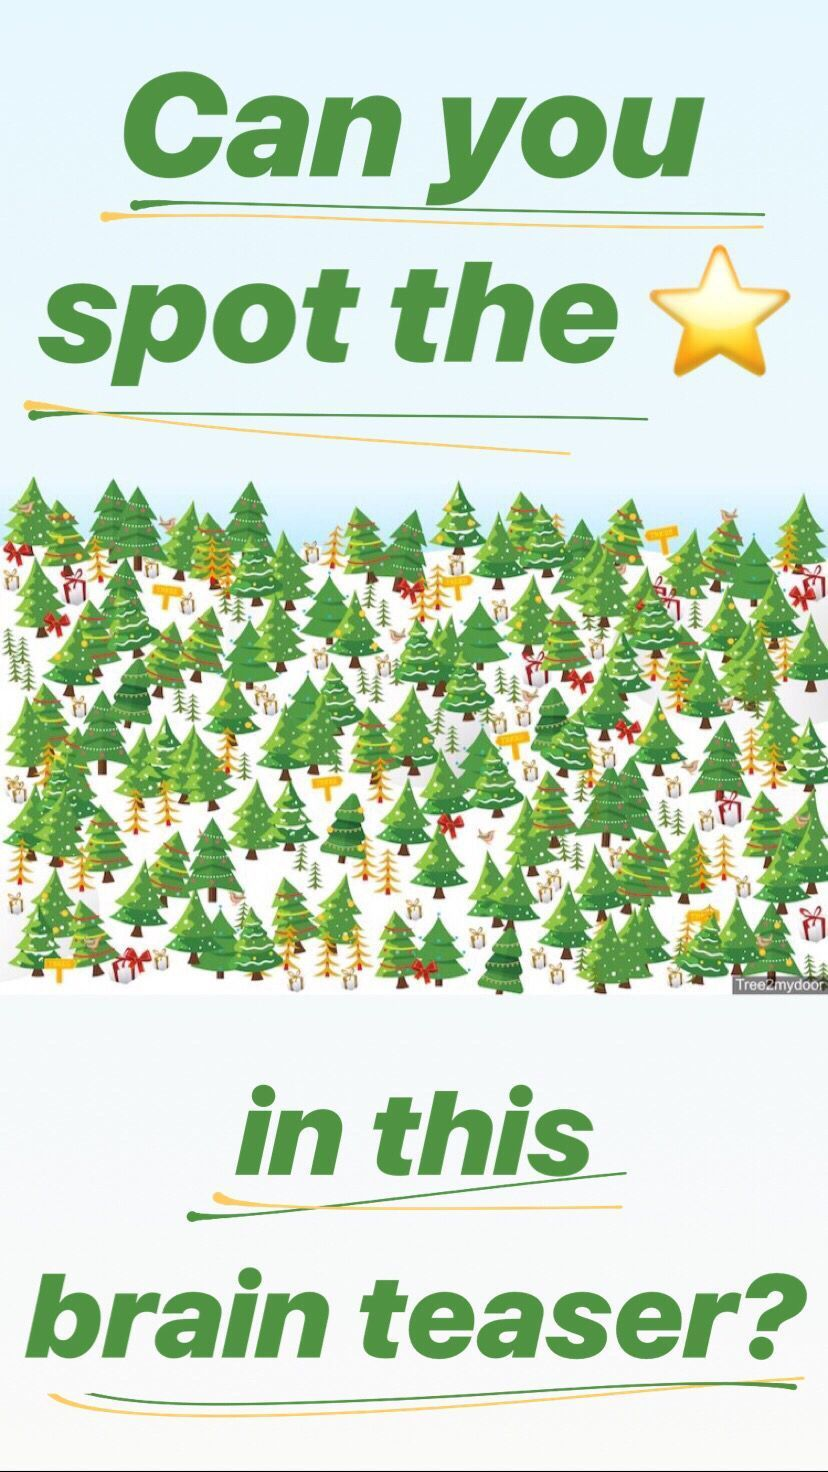 There's a star hidden among over 150 Christmas trees in